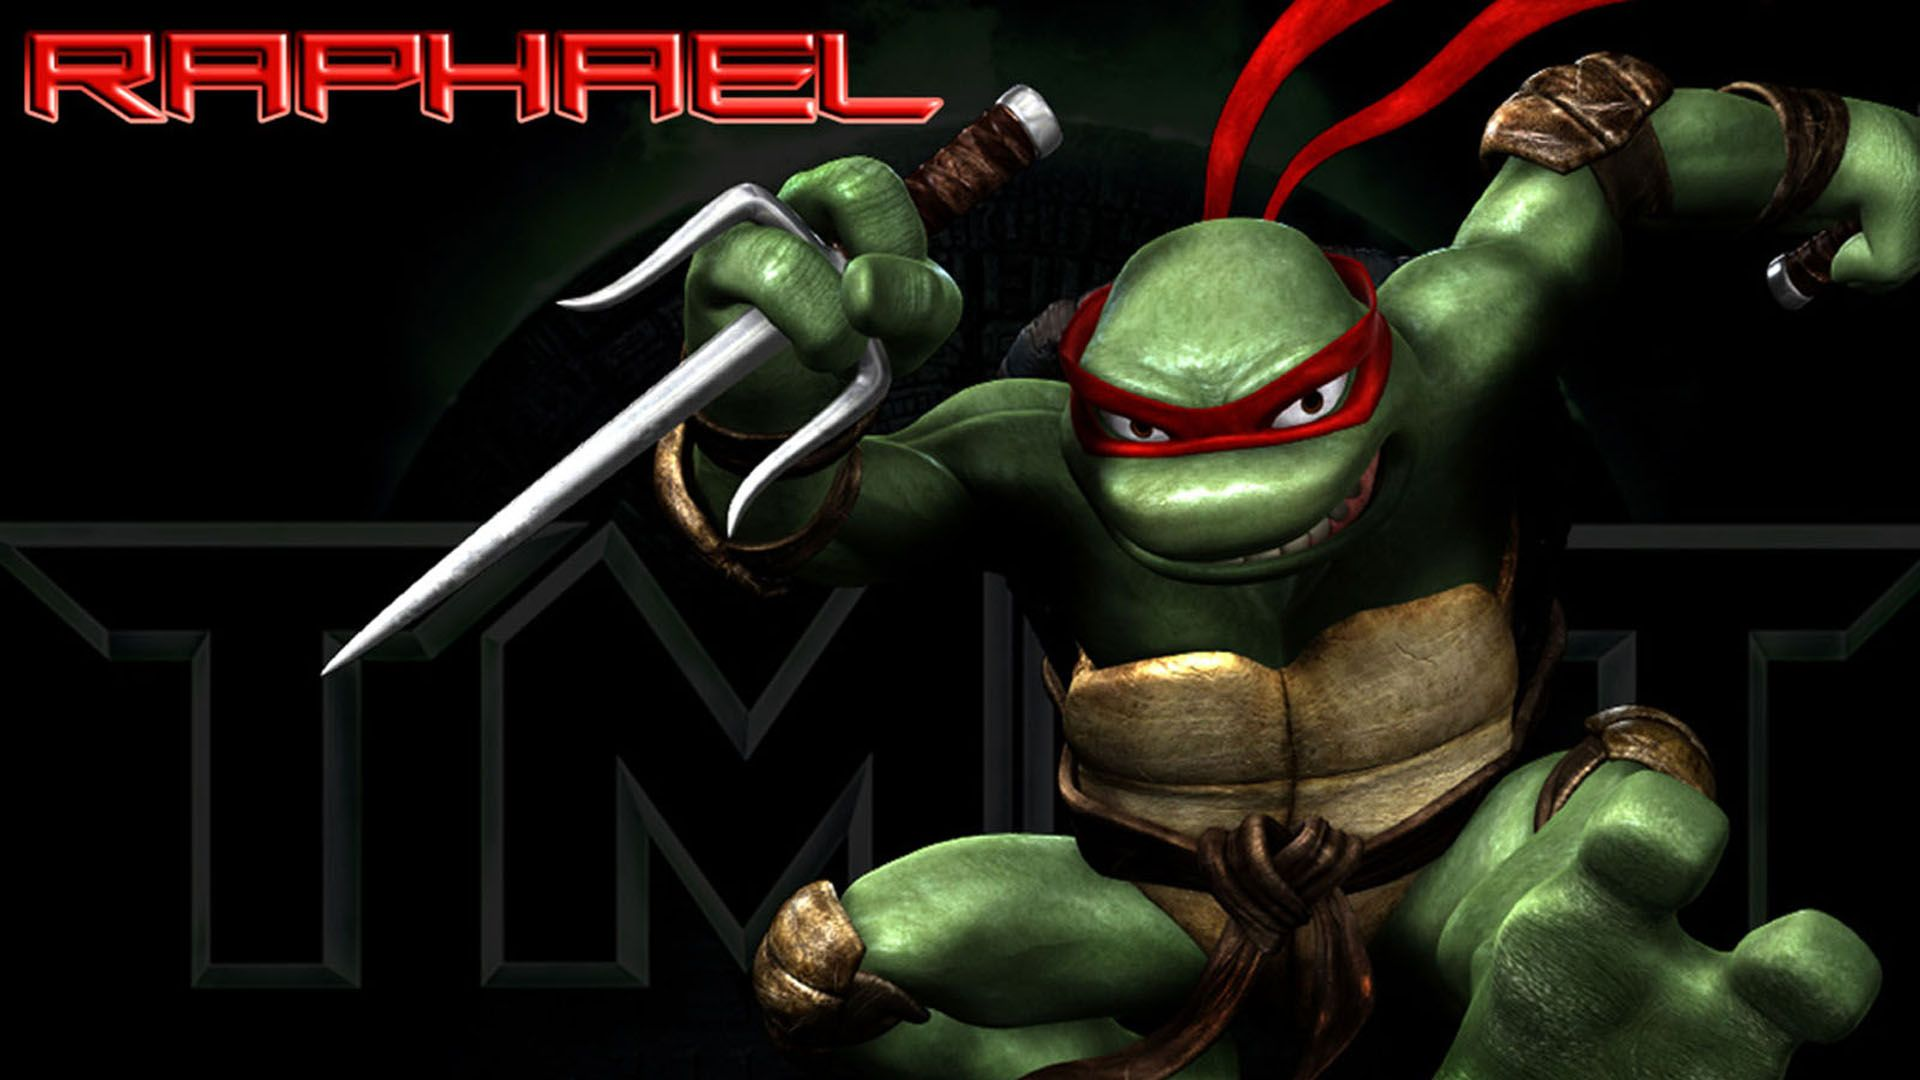 To preview and buy music from Tmnt Teenage Mutant Ninja